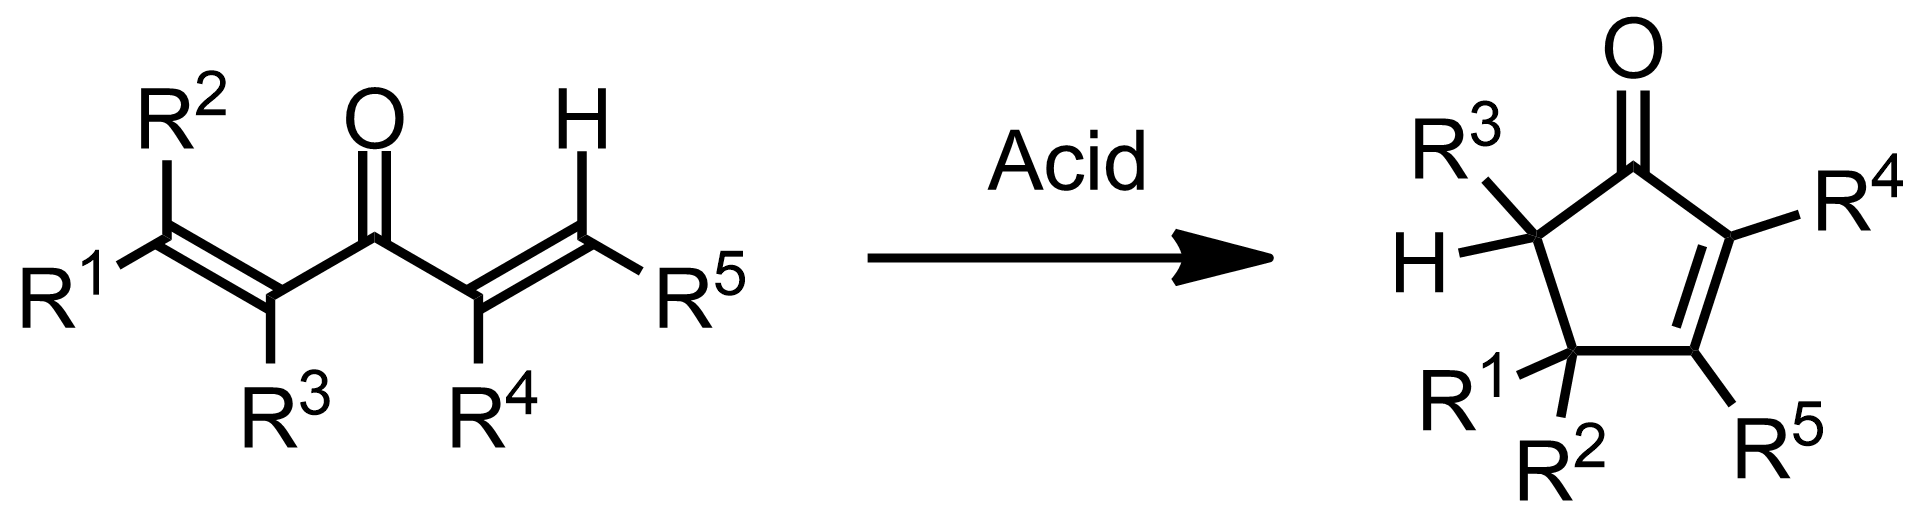 Schematic representation of the Nazarov Cyclization Reaction.